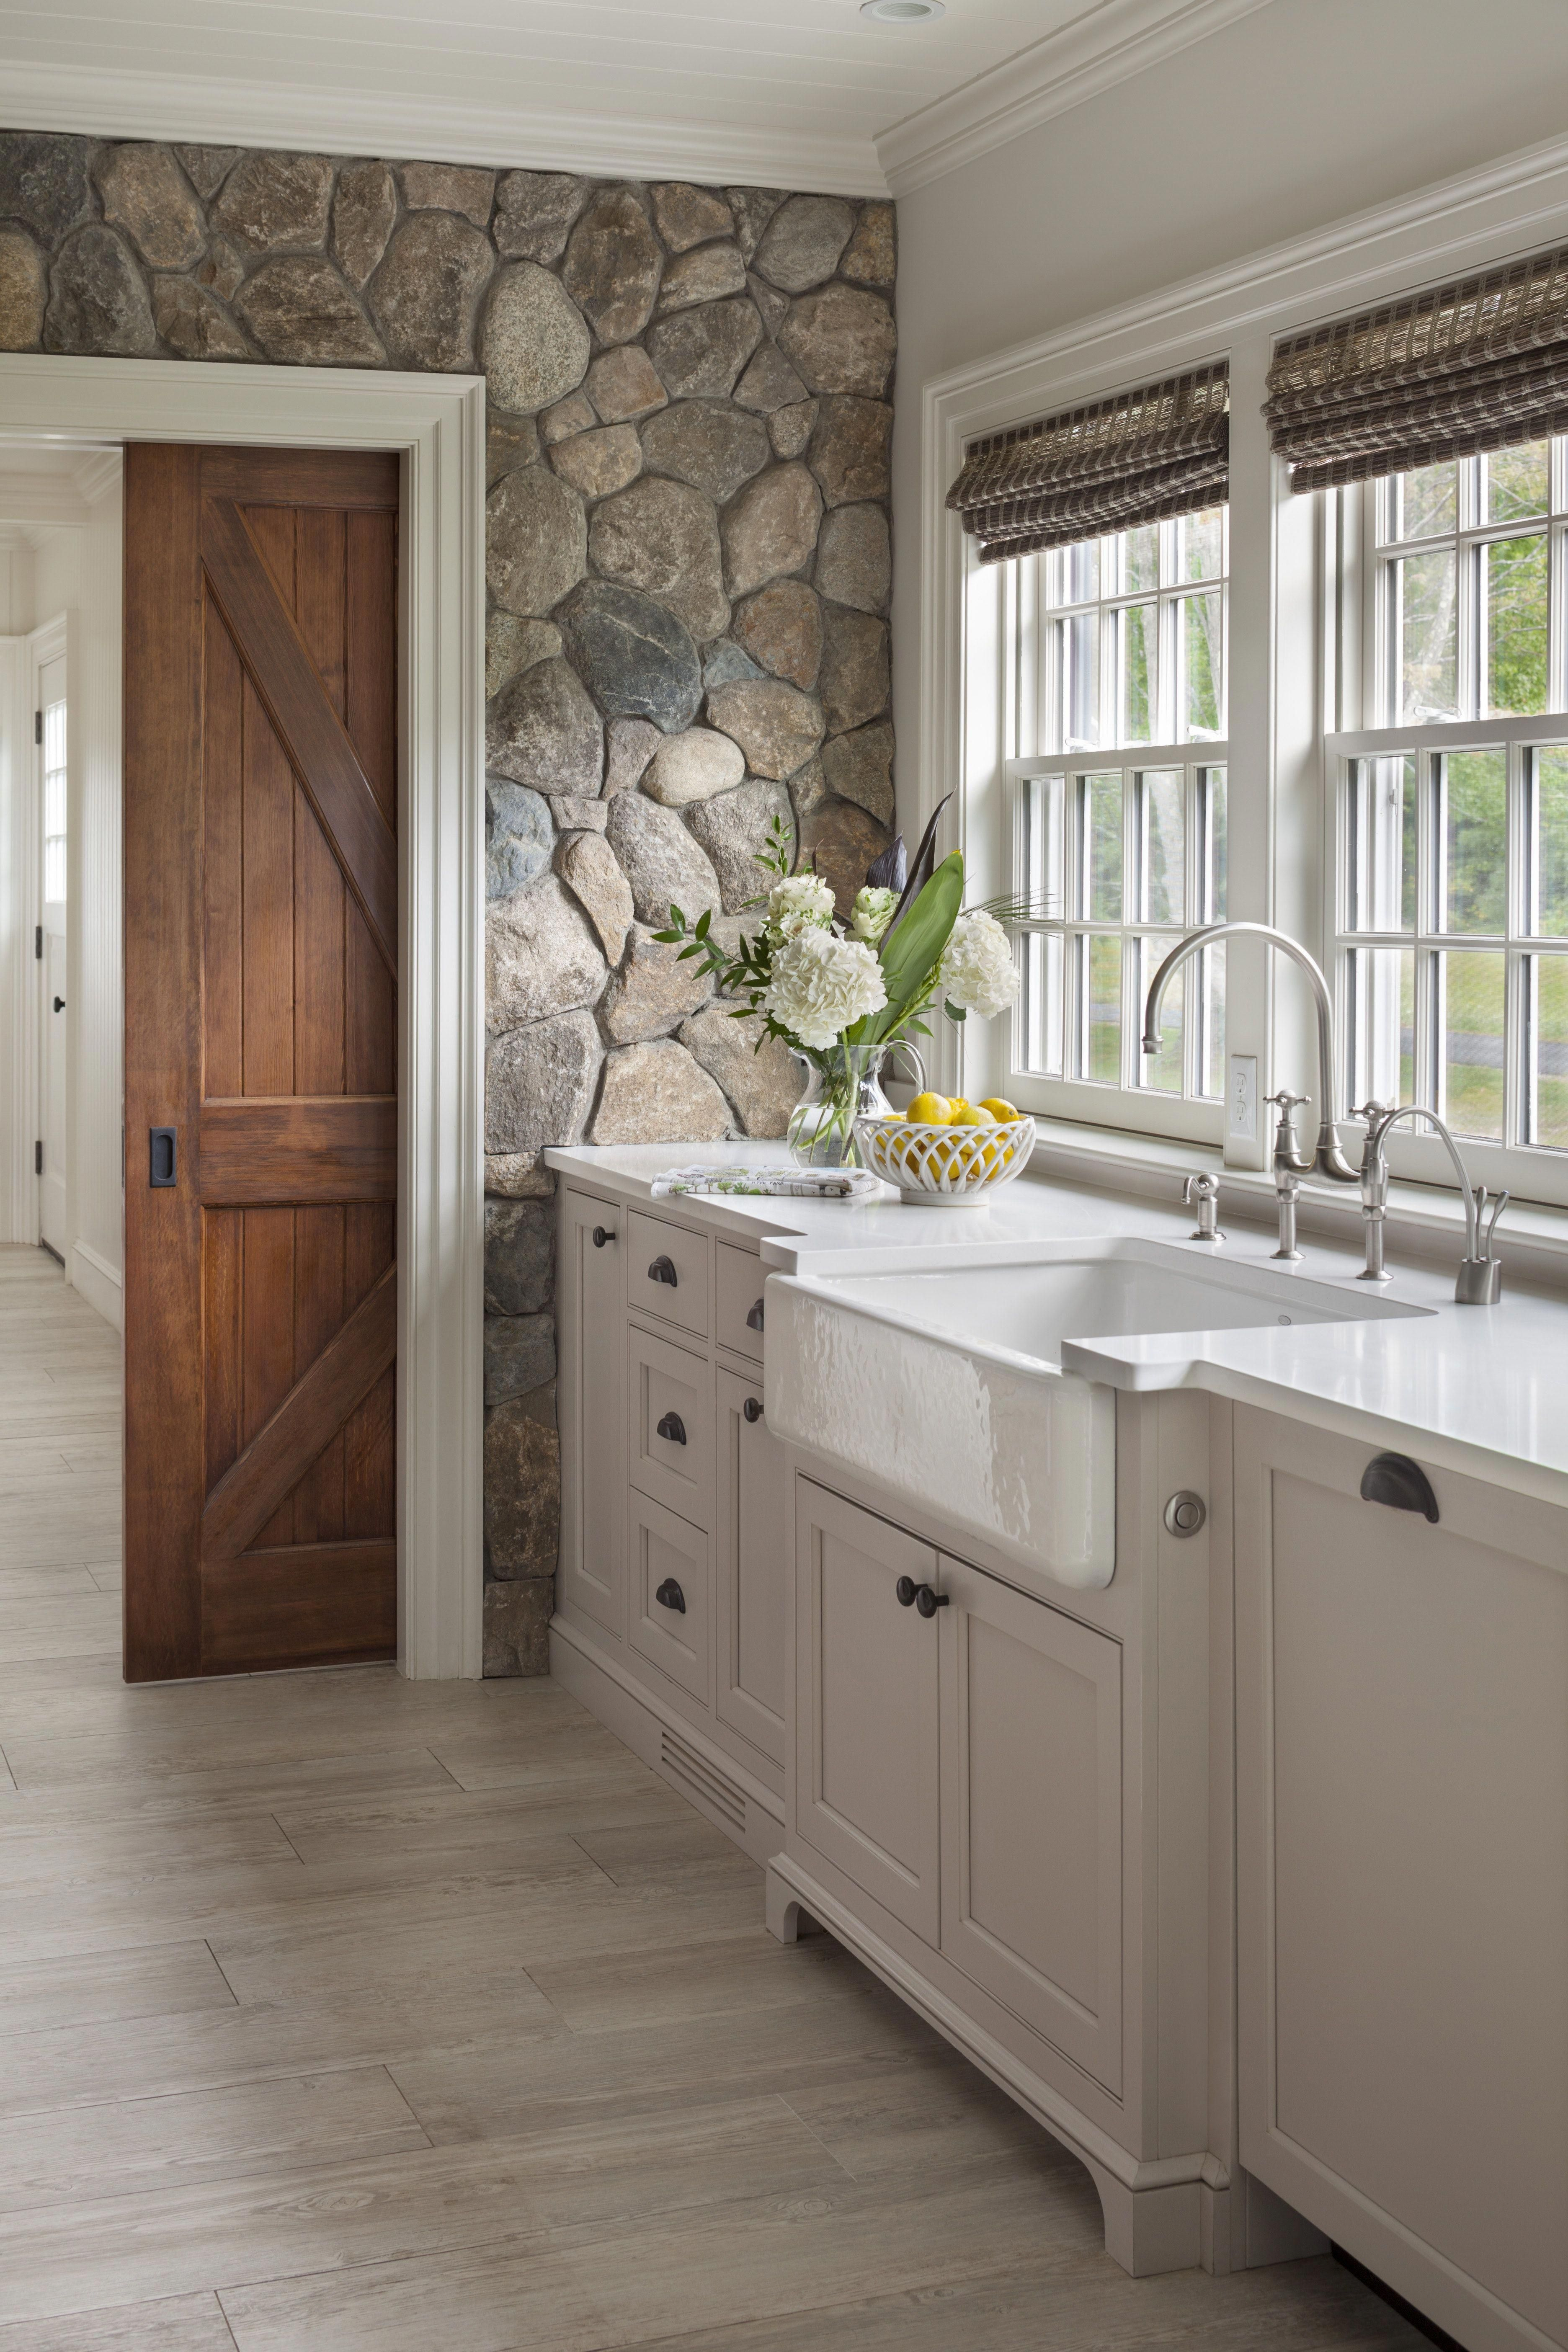 Farmhouse Kitchen With New England Fieldstone Accent Wall And Sliding Barn Door Farmhousekitchen Rustic House Kitchen Remodel Home Kitchens